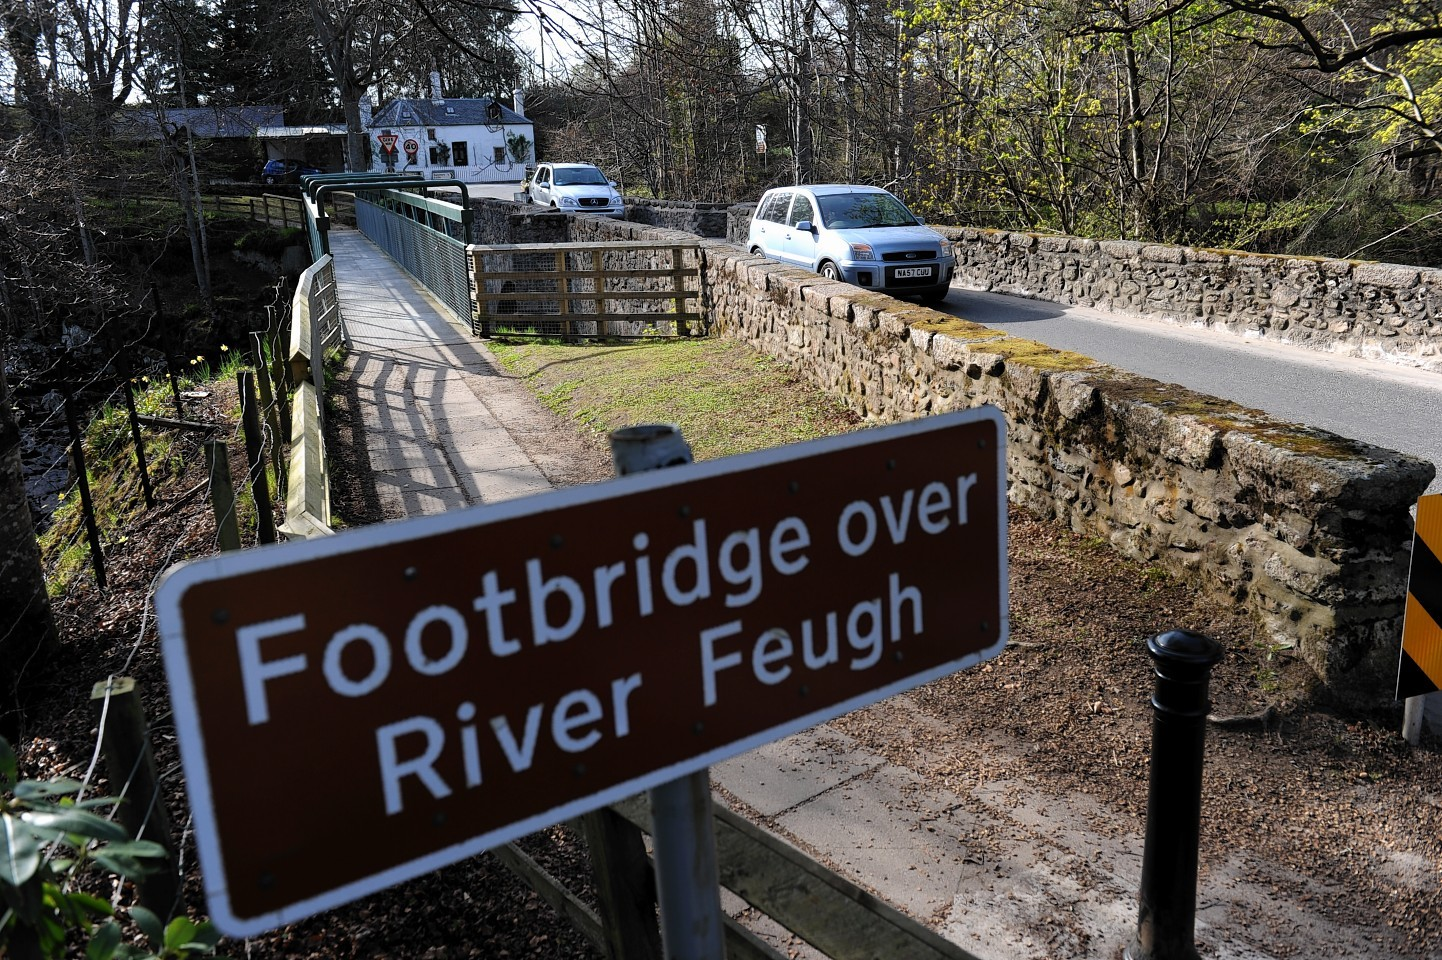 Locals are worried about traffic at the Bridge of Feugh